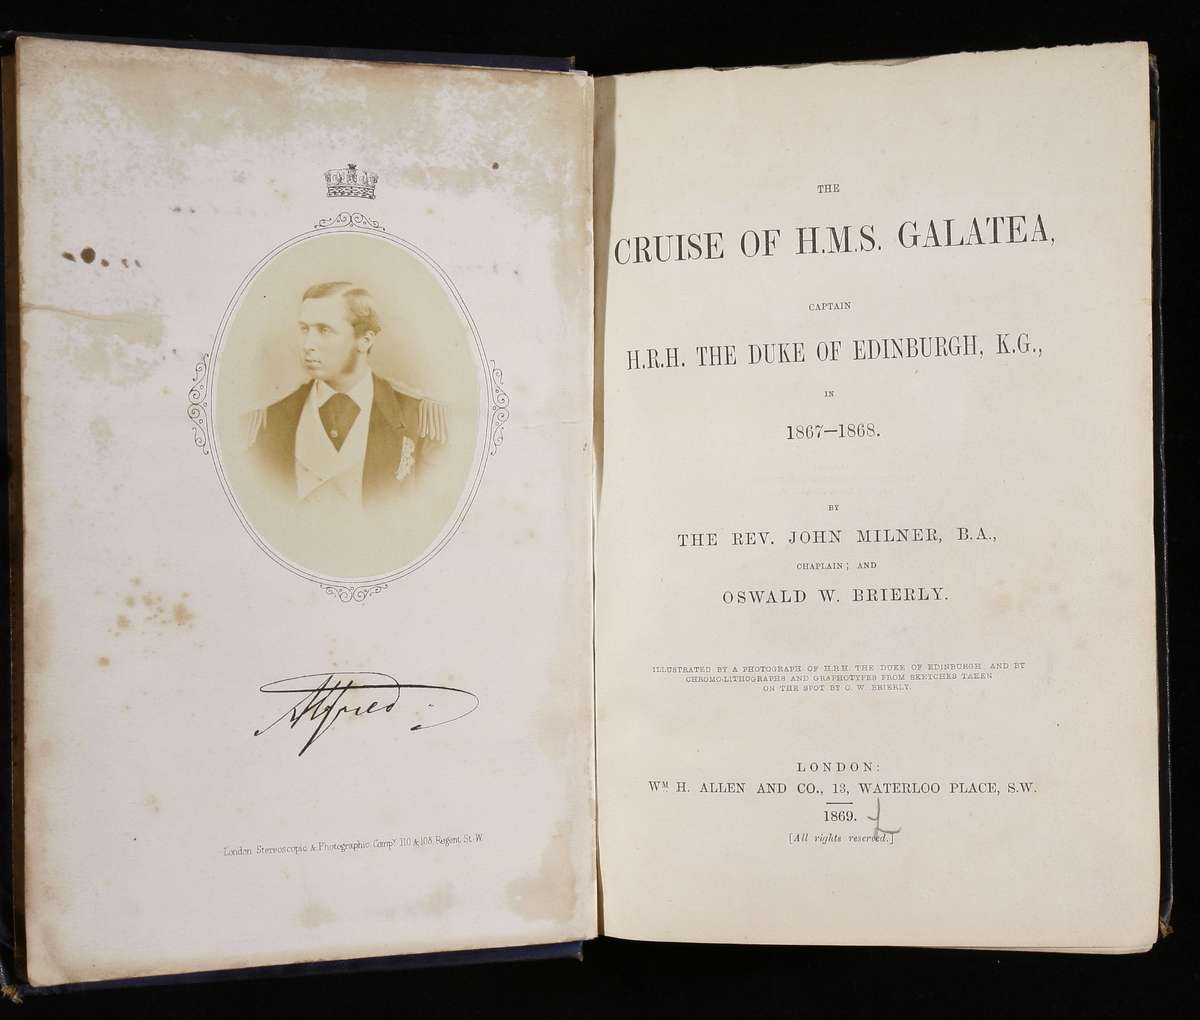 A book, signed by Alfred, commemorating his world tour on the HMAS Galatea, 1869 ANMM collection